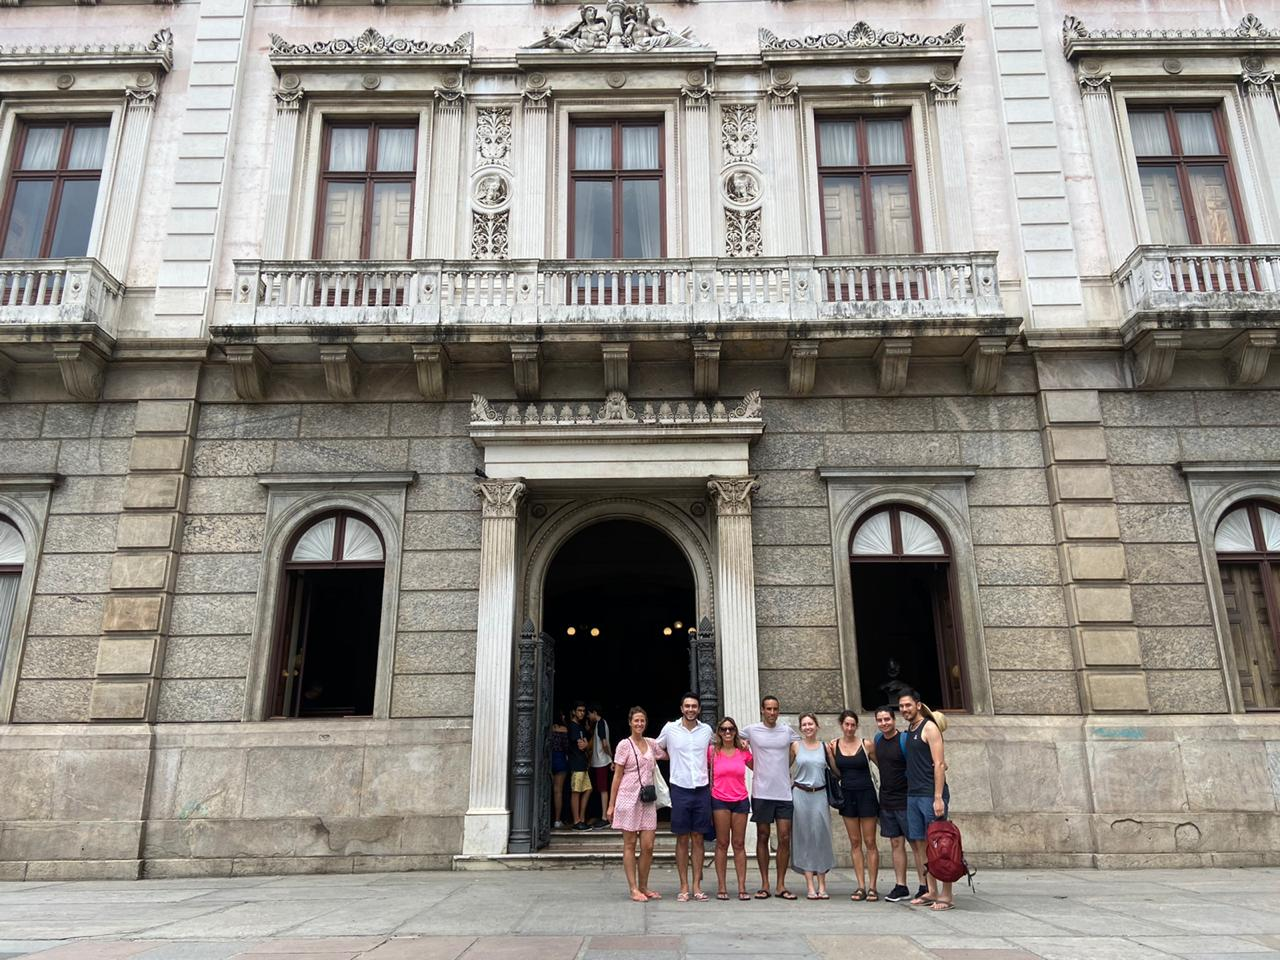 Students in front of Catete Palace